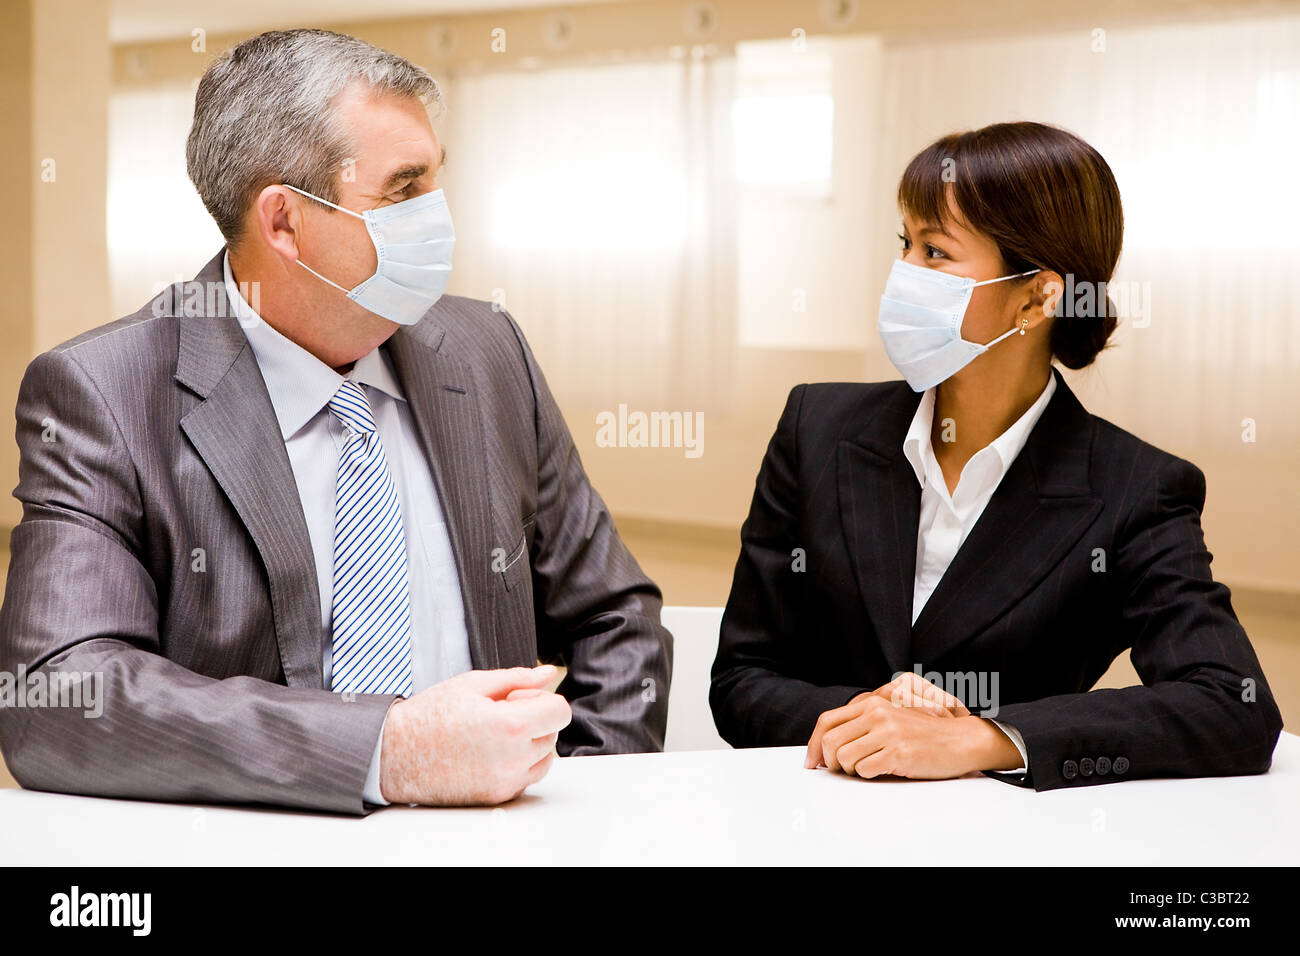 Portrait of two business partners in protective masks looking at each other - Stock Image